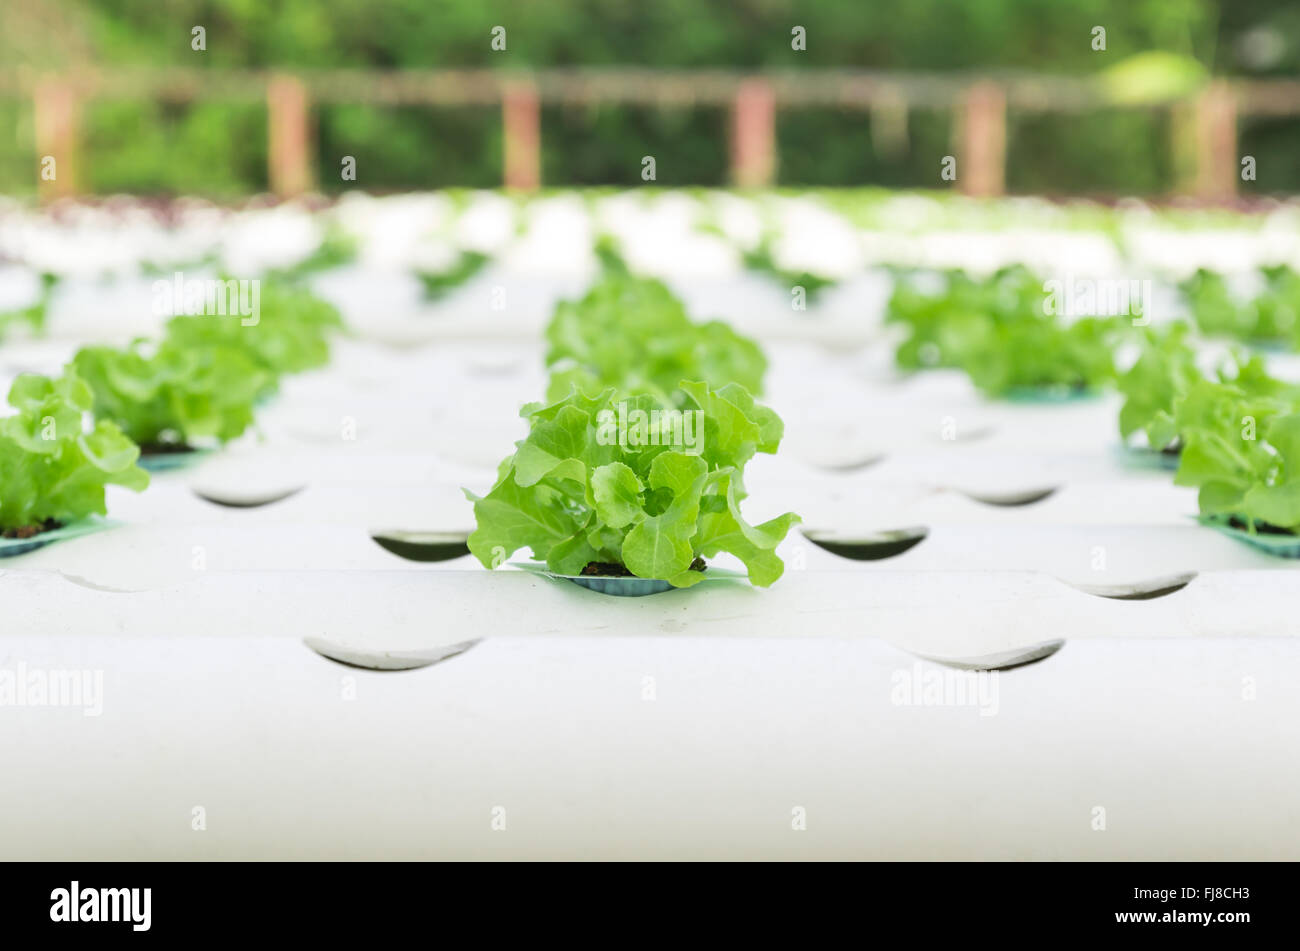 hydroponic vegetable production Early development of hydroponic and seawater greenhouse processes would ideally be restricted to areas which demonstrate stable economics, heightened land degradation, a high density of species, and a human need for non-traditional, self-sustaining means of fresh water or food production.